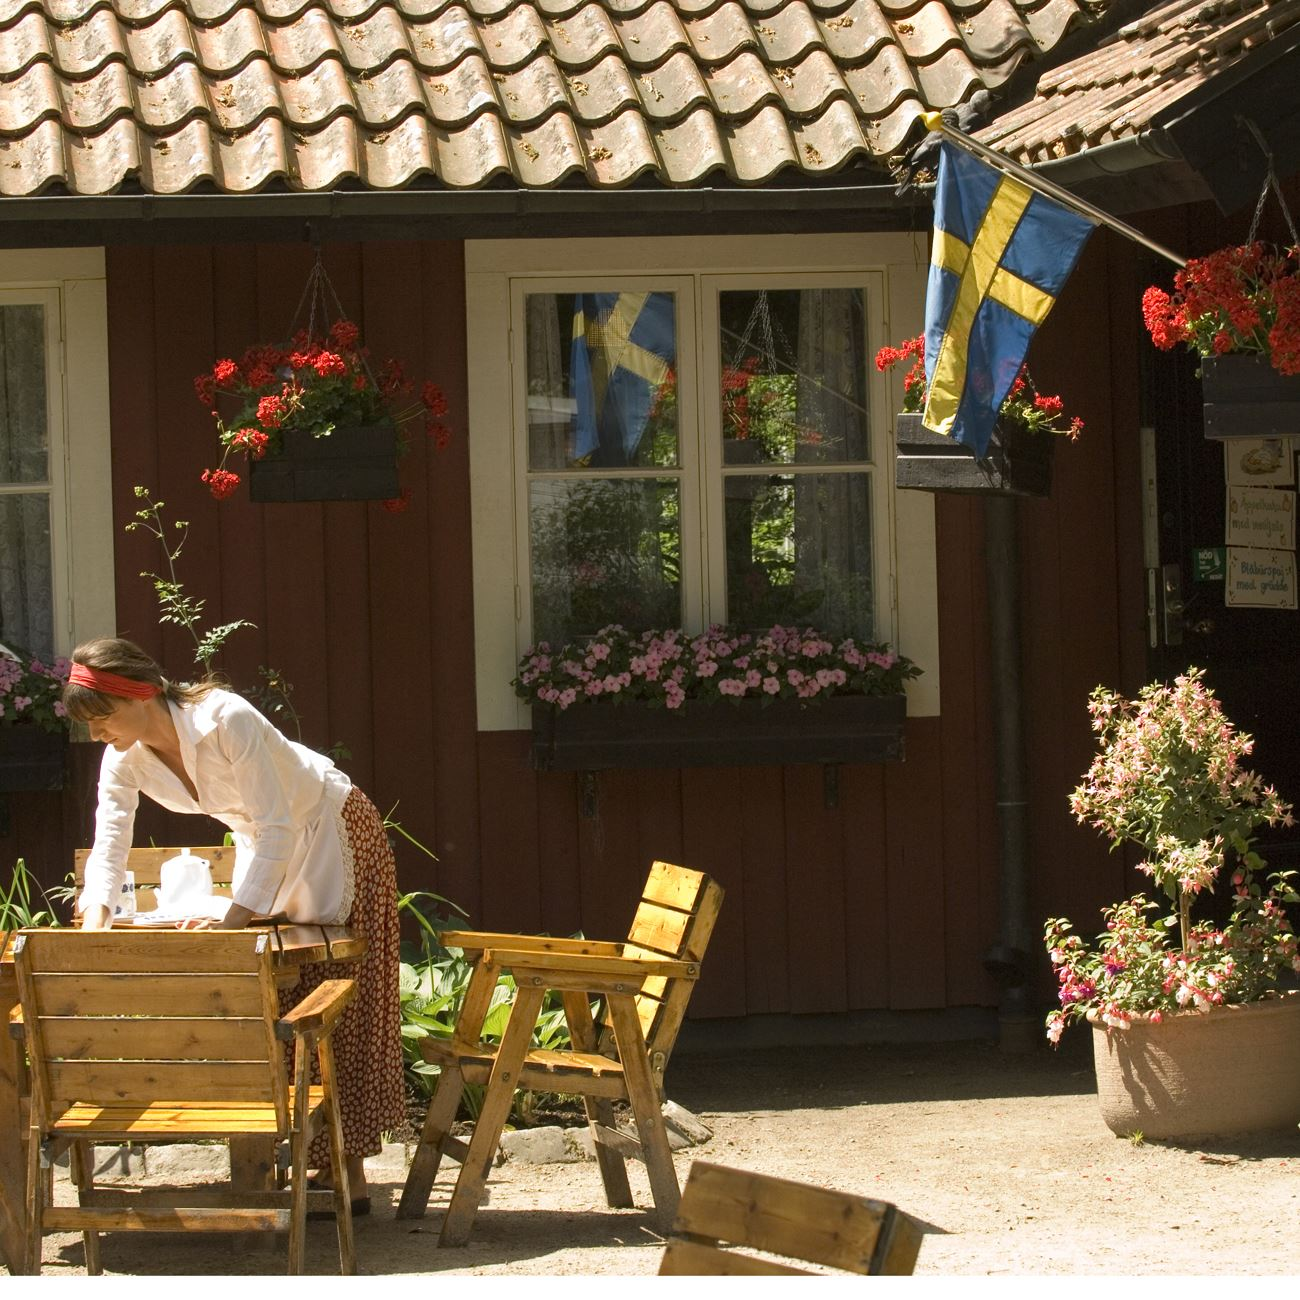 Apladalen's Restaurant & Coffeehouse